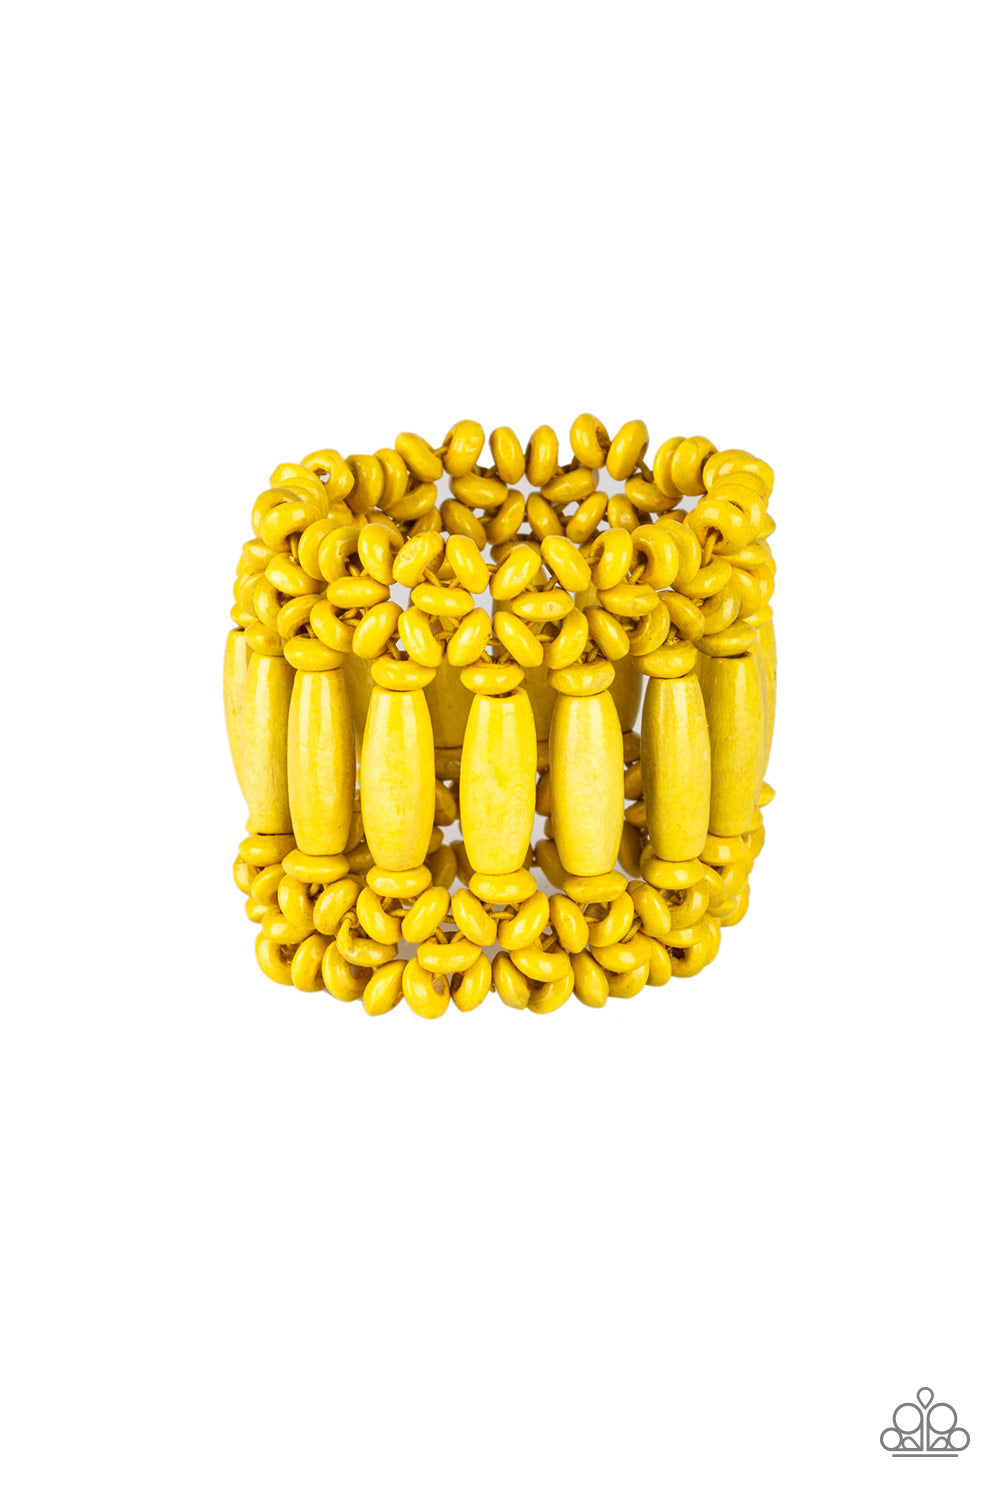 Paparazzi Accessories - Barbados Beach Club - Yellow Bracelet - JMJ Jewelry Collection